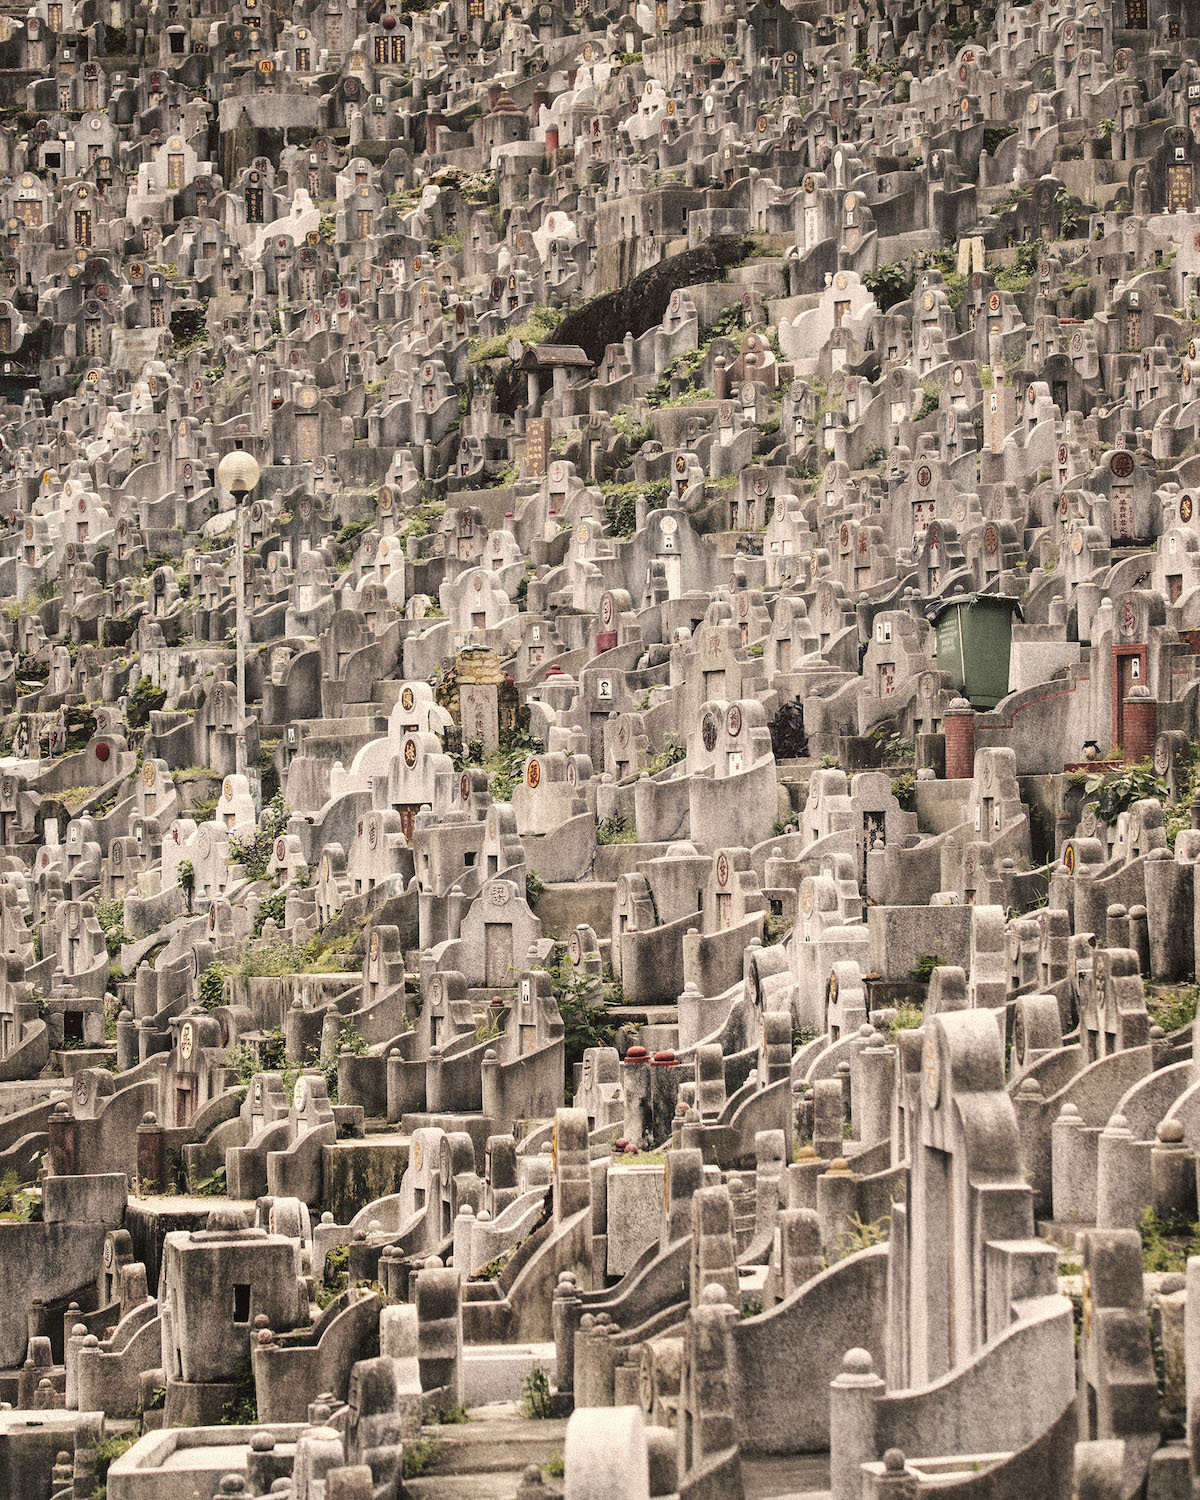 Burial Site in Hong Kong by Finbarr Fallon